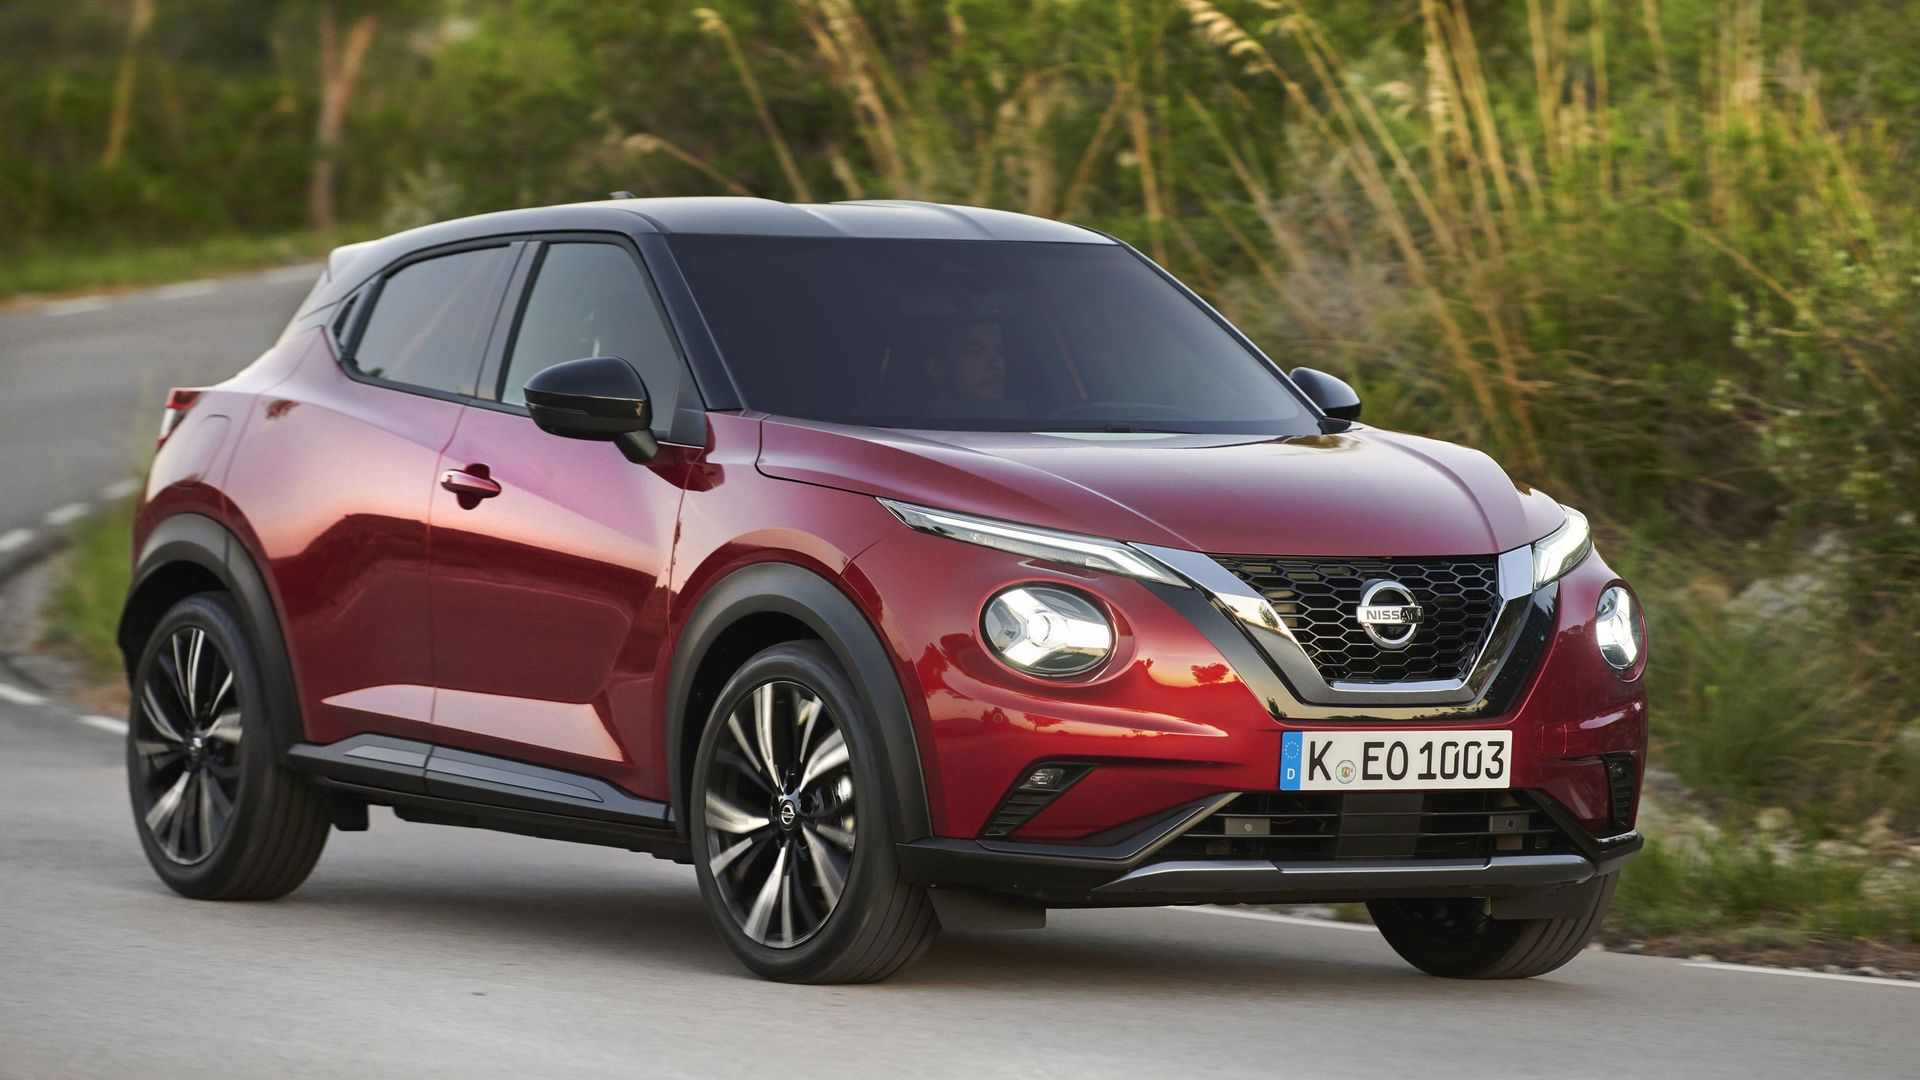 Nissan Suv Used Cars For Sale Autotrader Uk